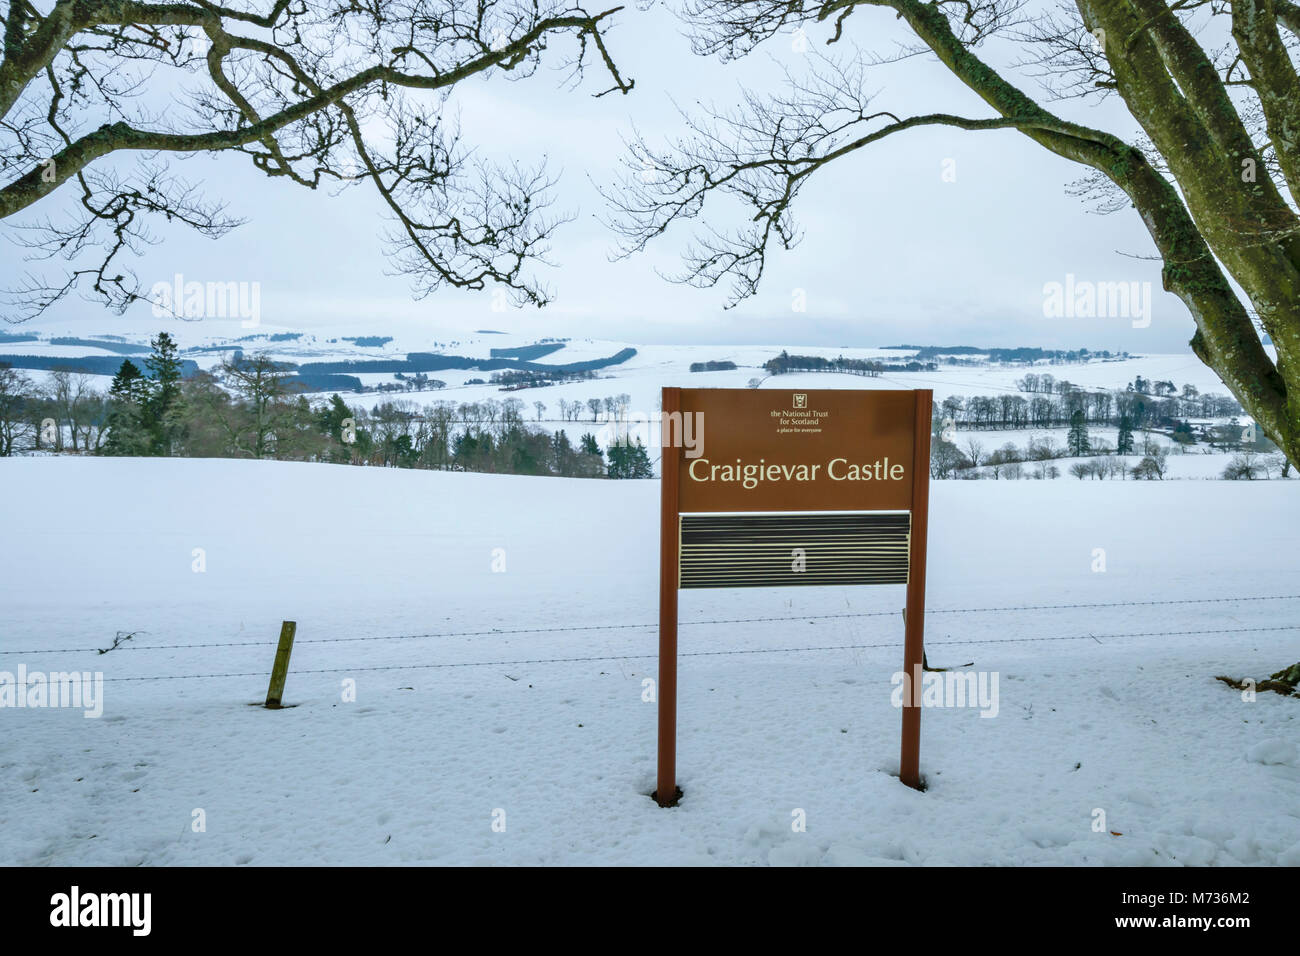 CRAIGIEVAR CASTLE ABERDEENSHIRE SCOTLAND A SIGN INDICATING THE CASTLE OVERLOOKING THE WINTER FIELDS AND COUNTRYSIDE - Stock Image